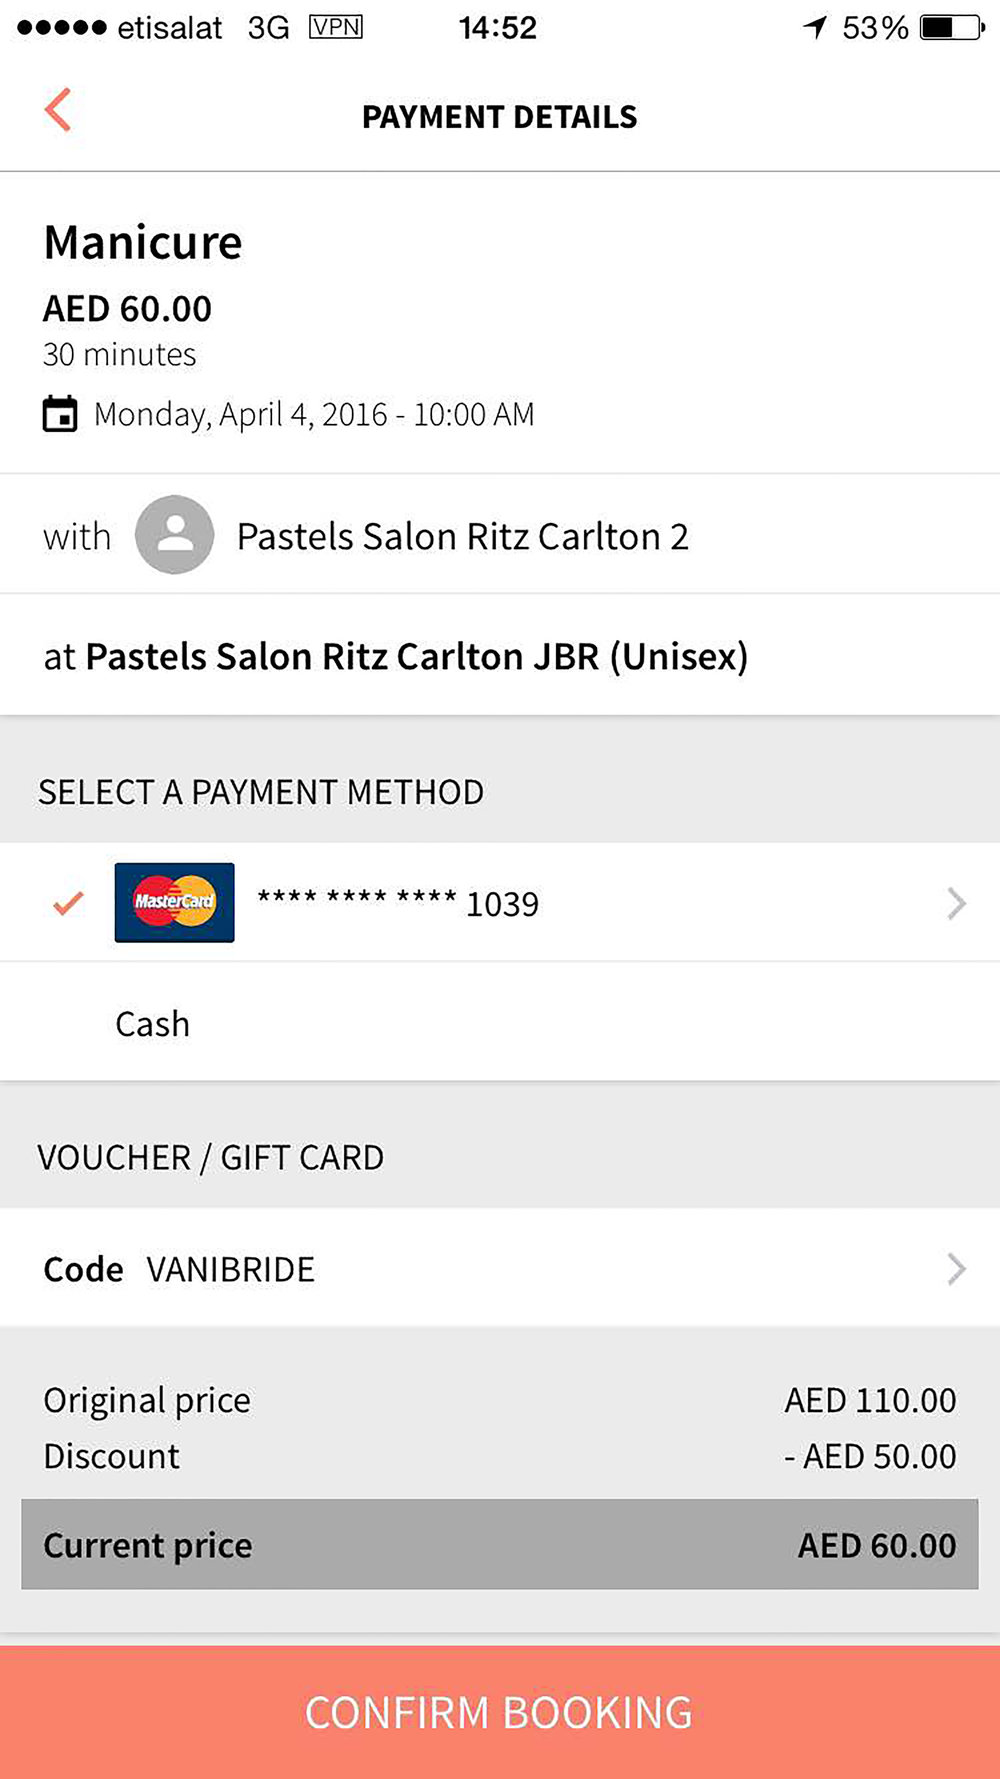 Select payment method (online or cash) - Et Voila!